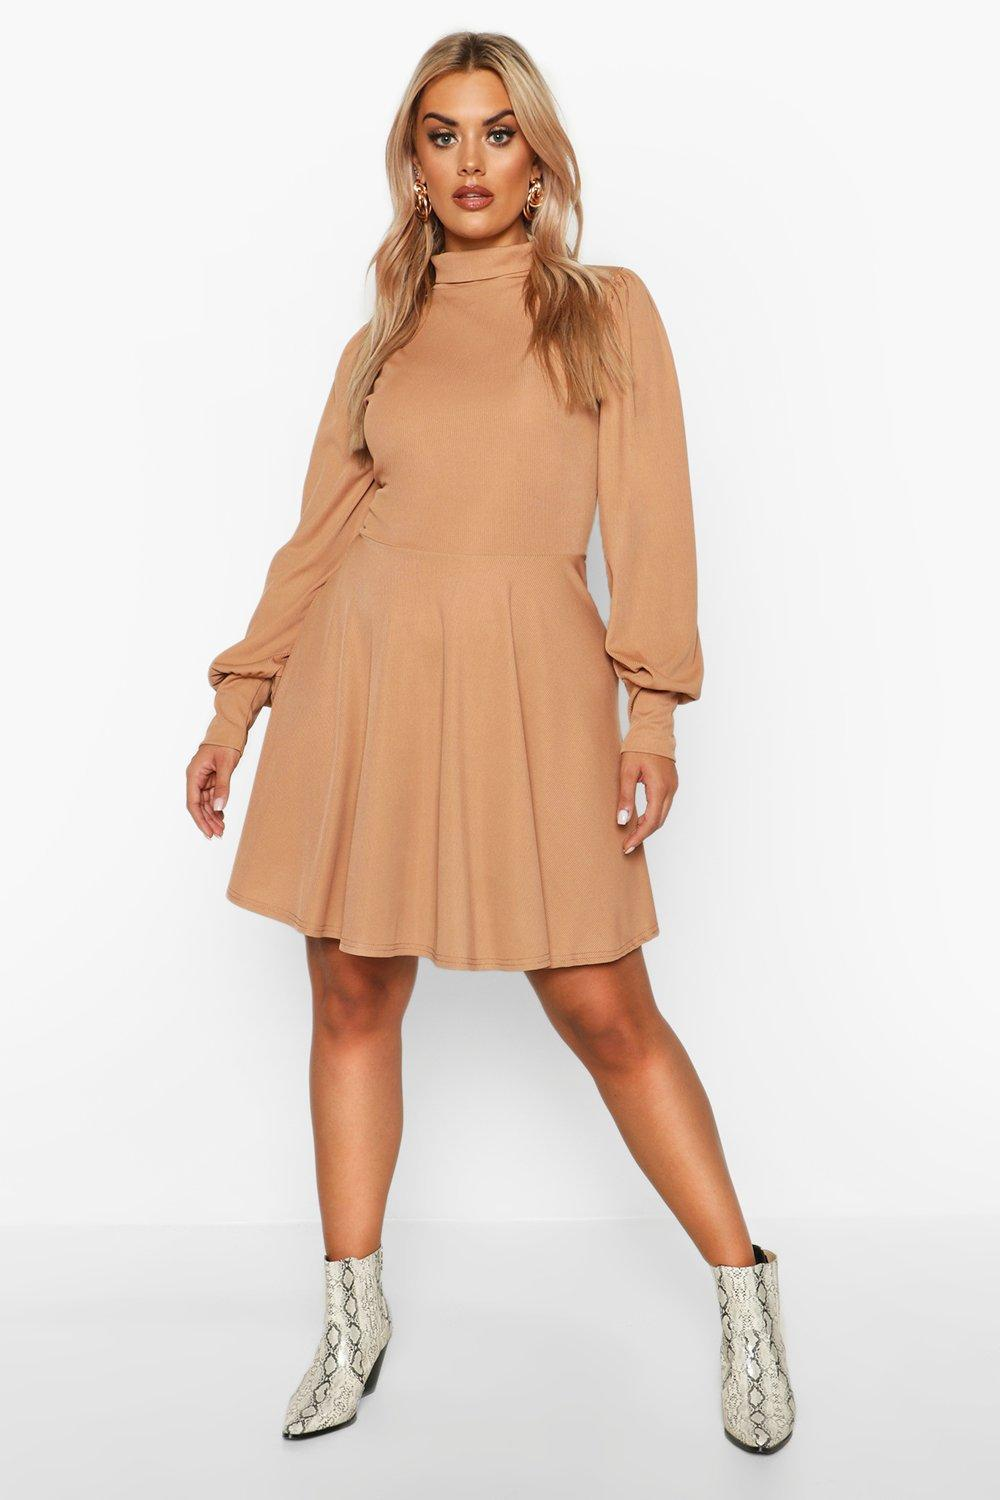 Plus Balloon Sleeve High Neck Skater Dress 8